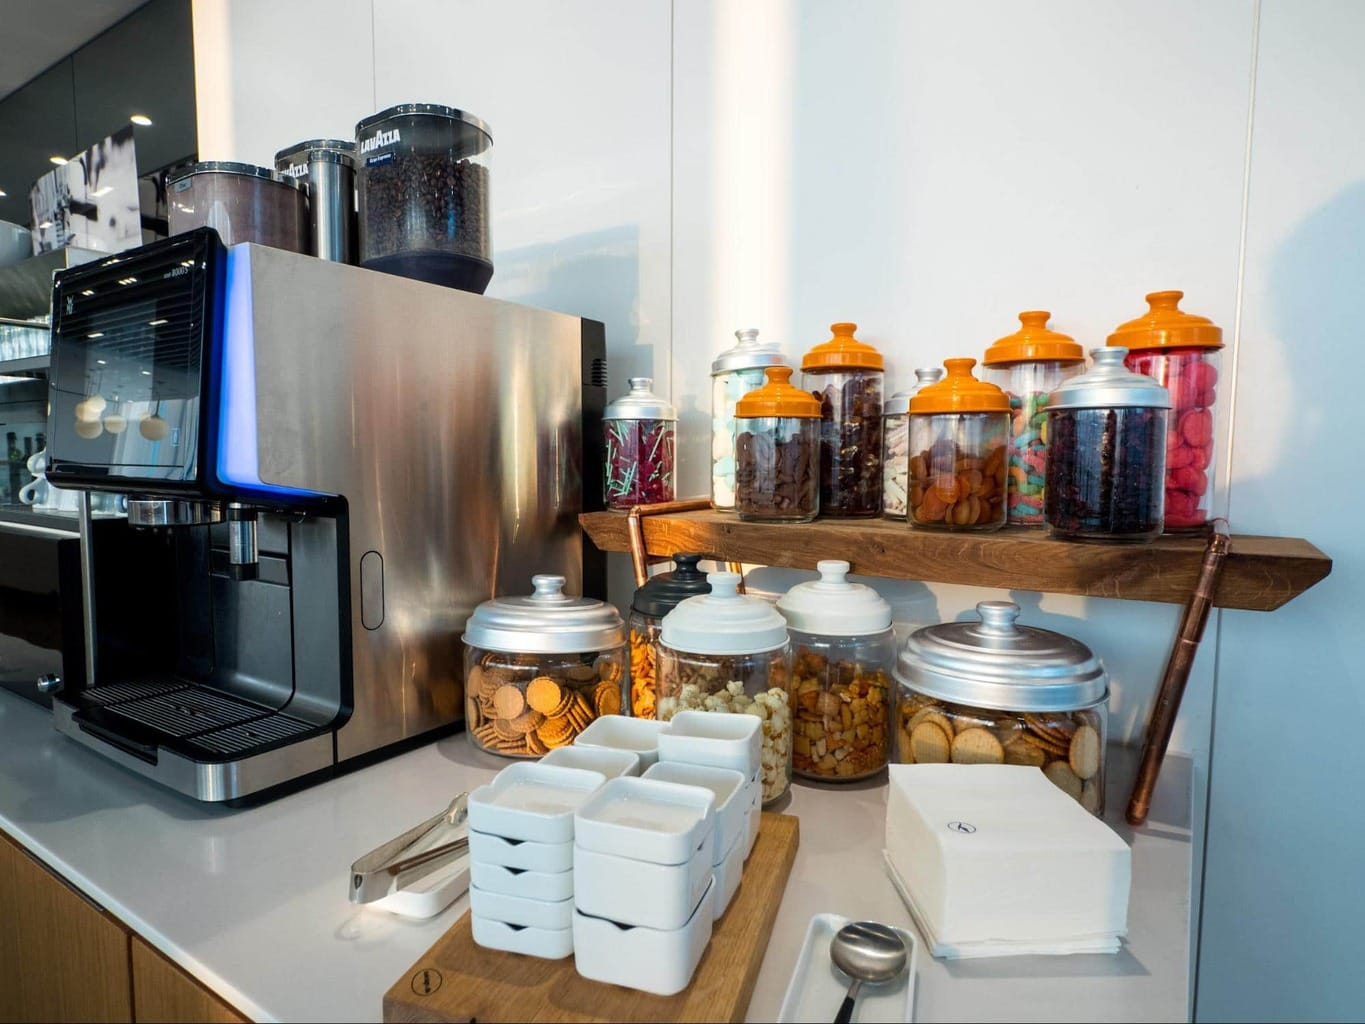 Coffee, drinks and snacks in Lufthansa Business Class Lounge at Munich Airport